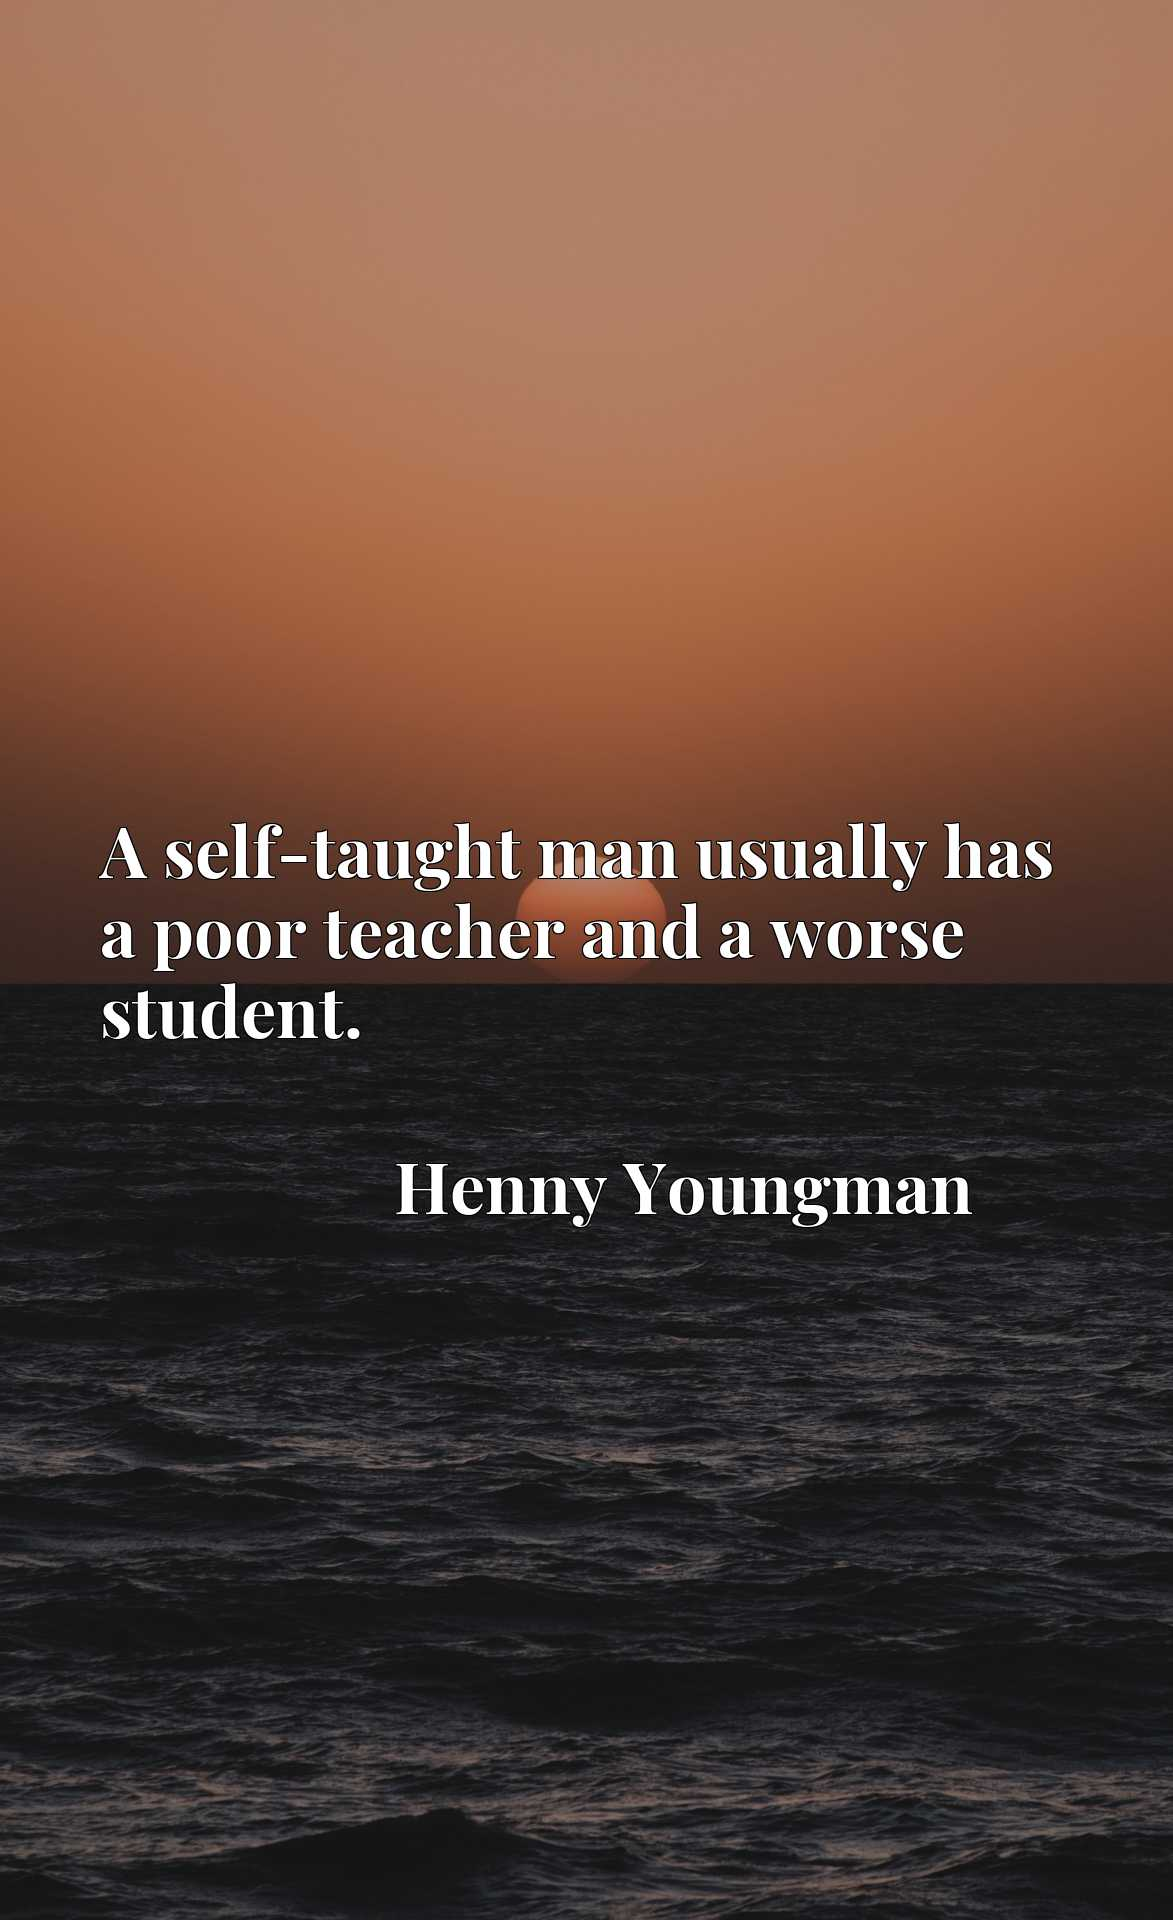 Quote Picture :A self-taught man usually has a poor teacher and a worse student.